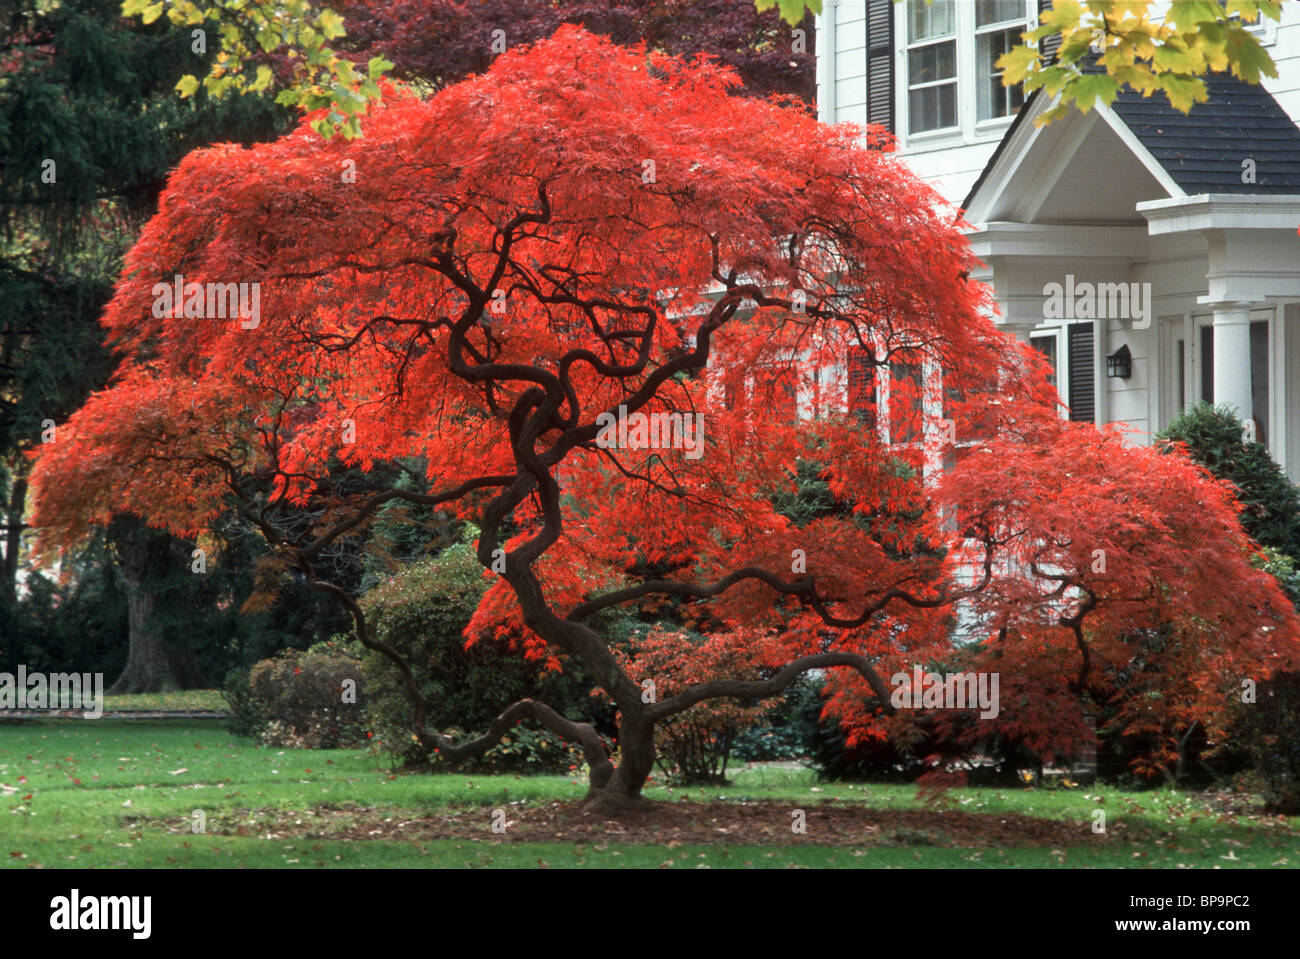 fall foliage japanese maple tree in blazing red color traditional stock photo 30947954 alamy. Black Bedroom Furniture Sets. Home Design Ideas